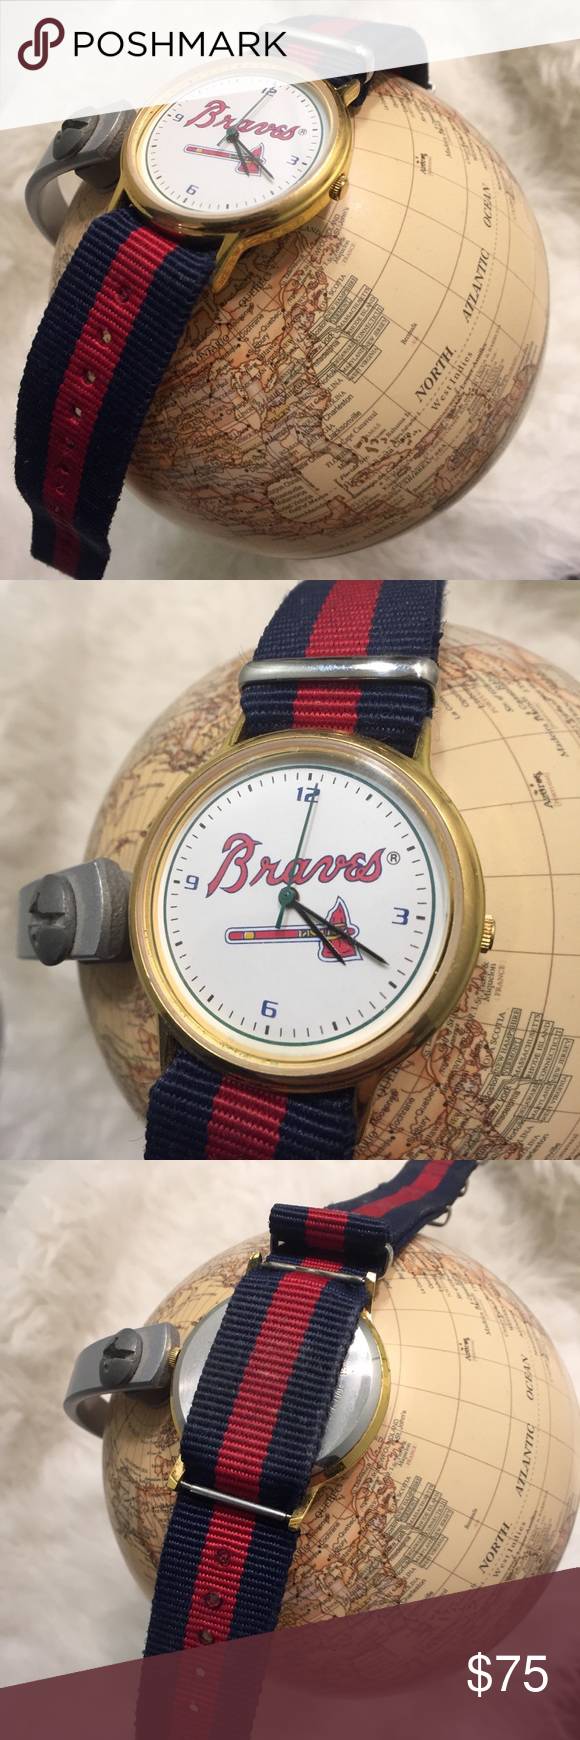 Collectible Atlanta Braves Gold Watch Atlanta Braves Braves Gold Watch